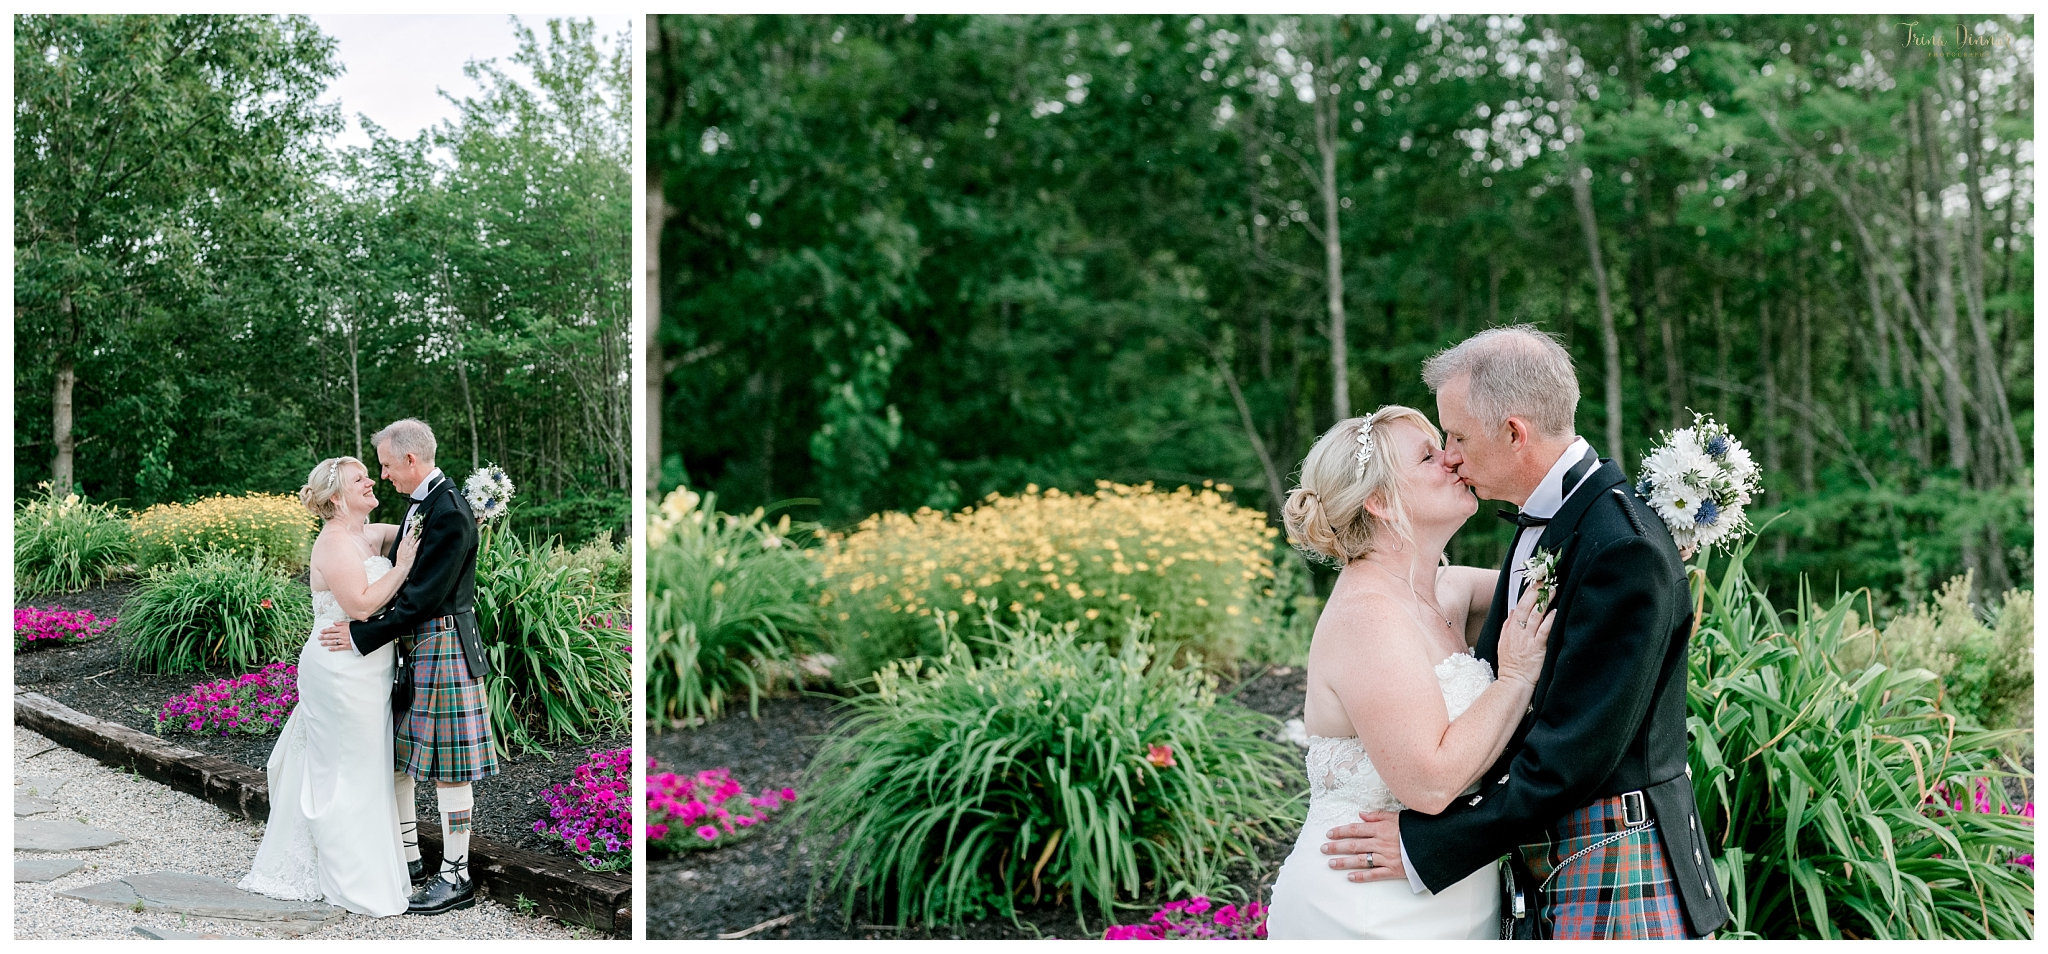 Bride and Groom Portraits at the Hitching Post.